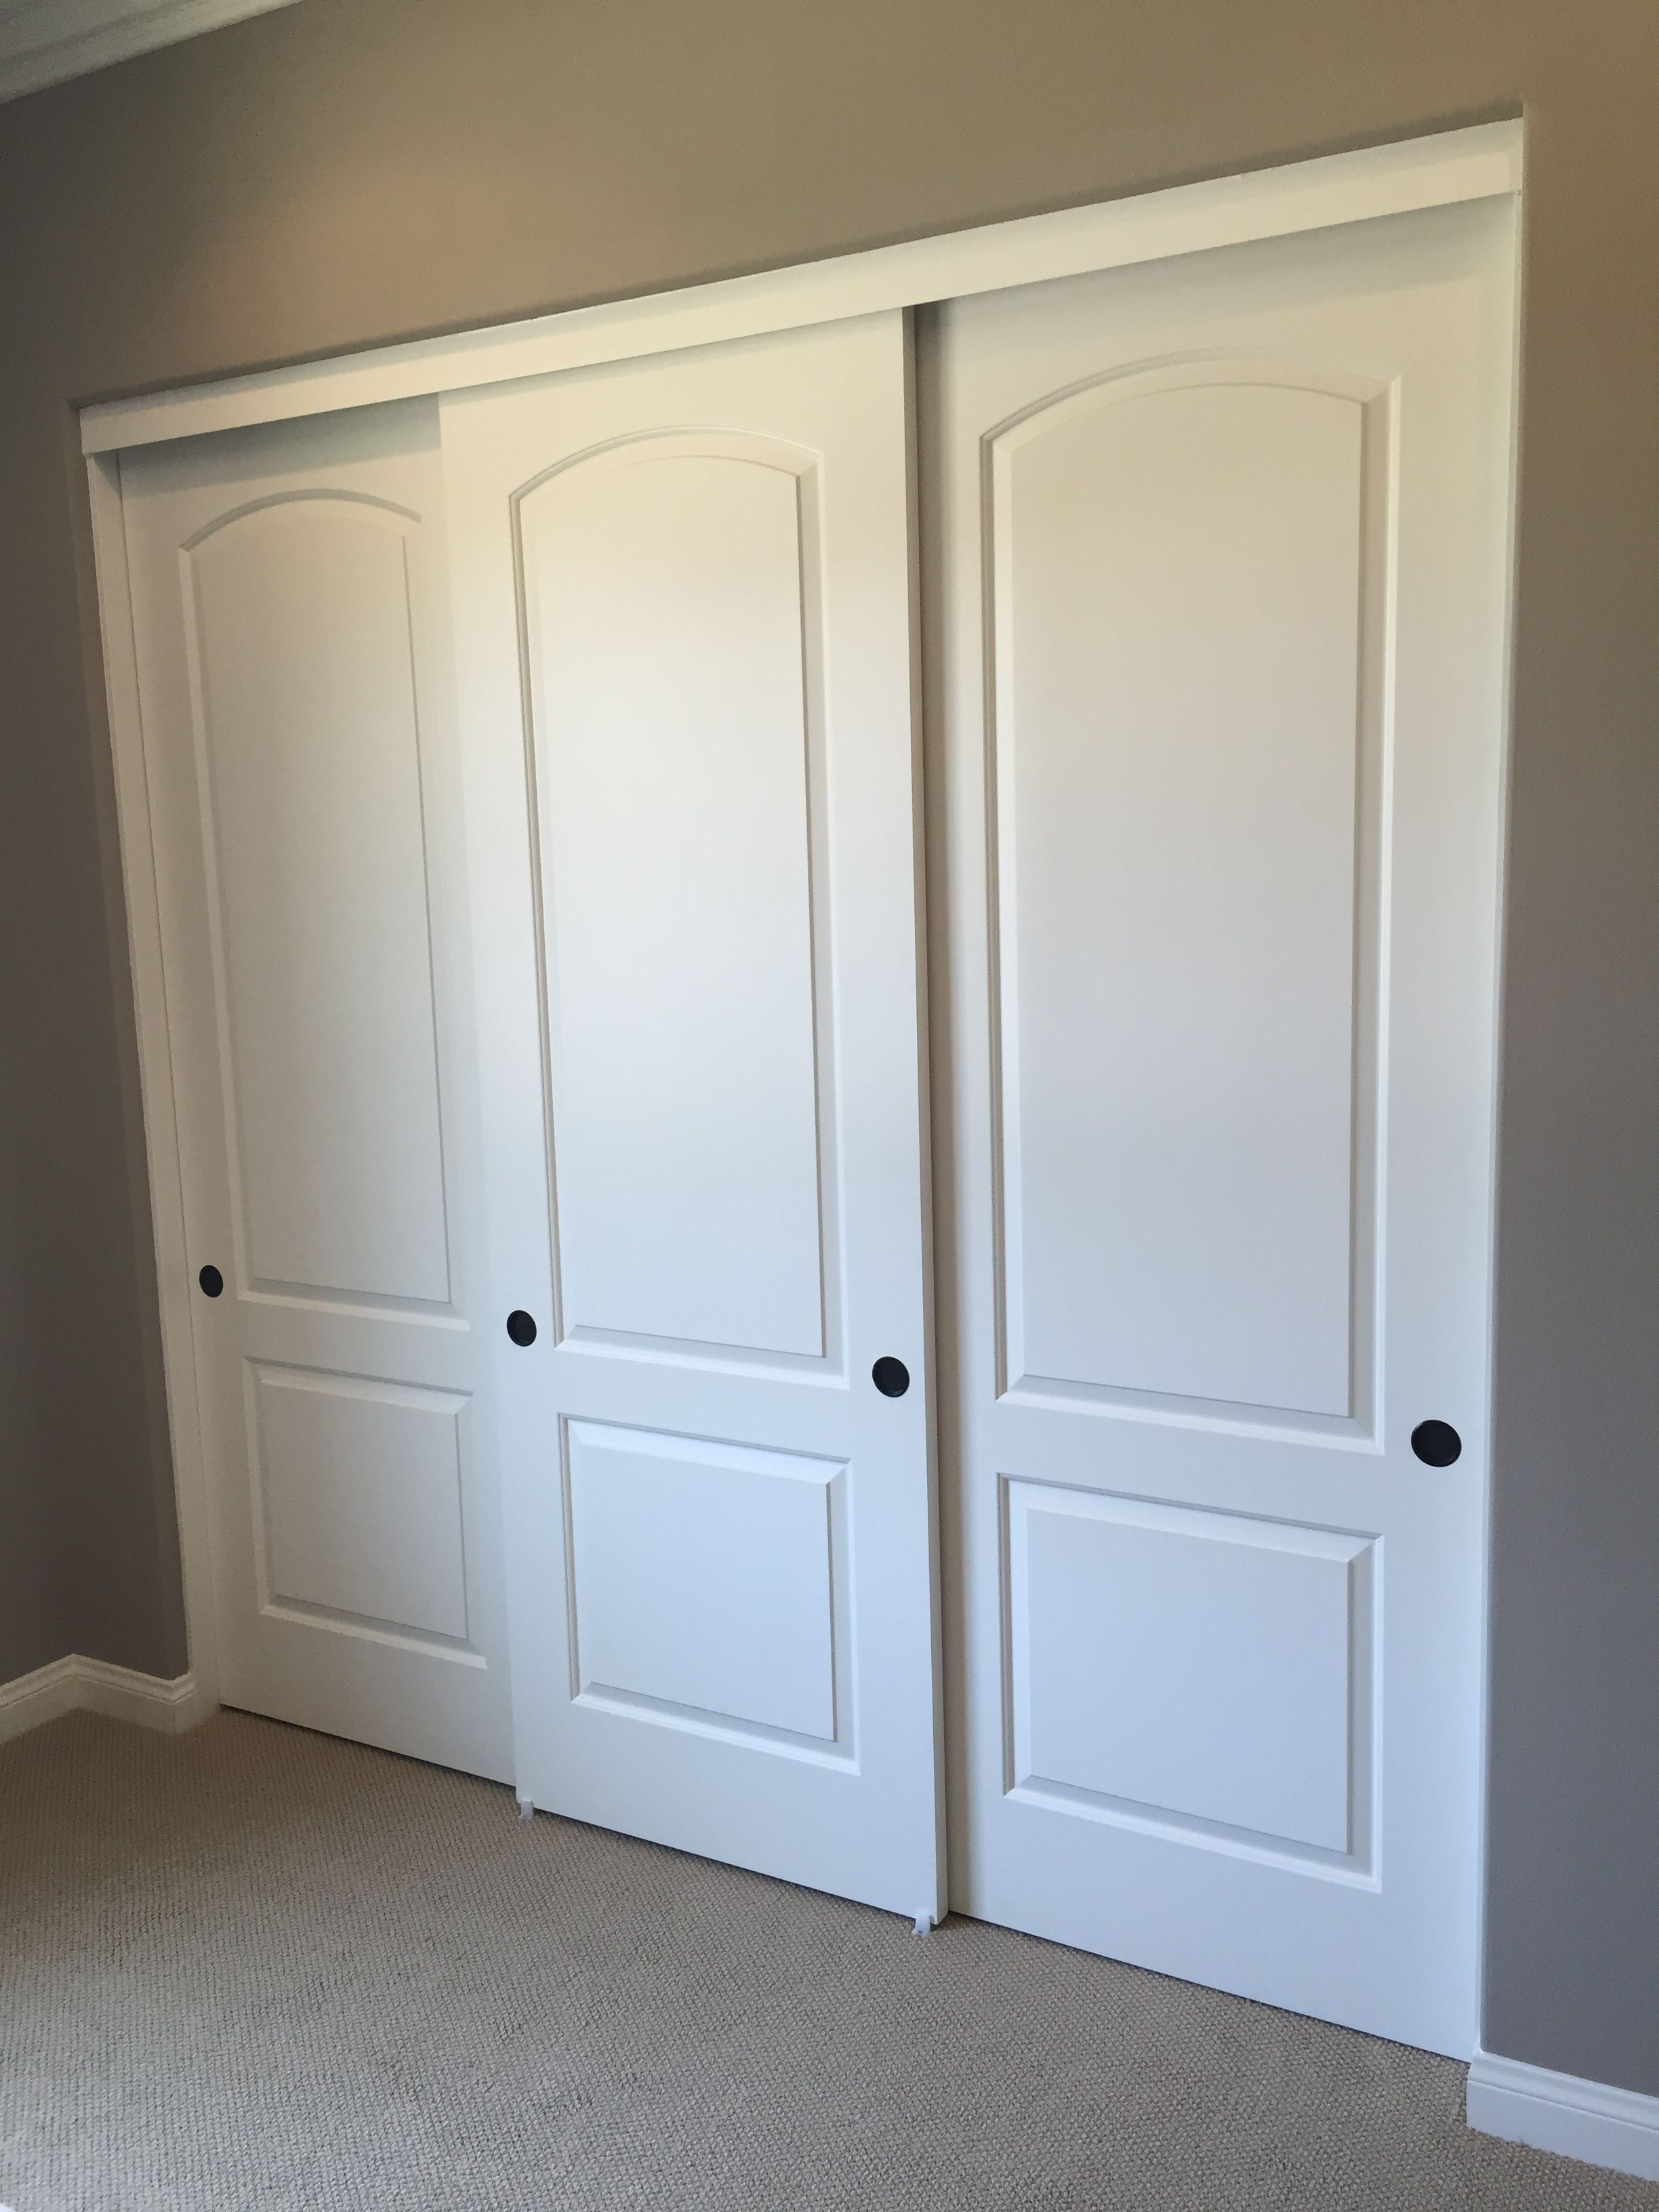 Sliding bypass closet doors of southern california are for Sliding bedroom doors